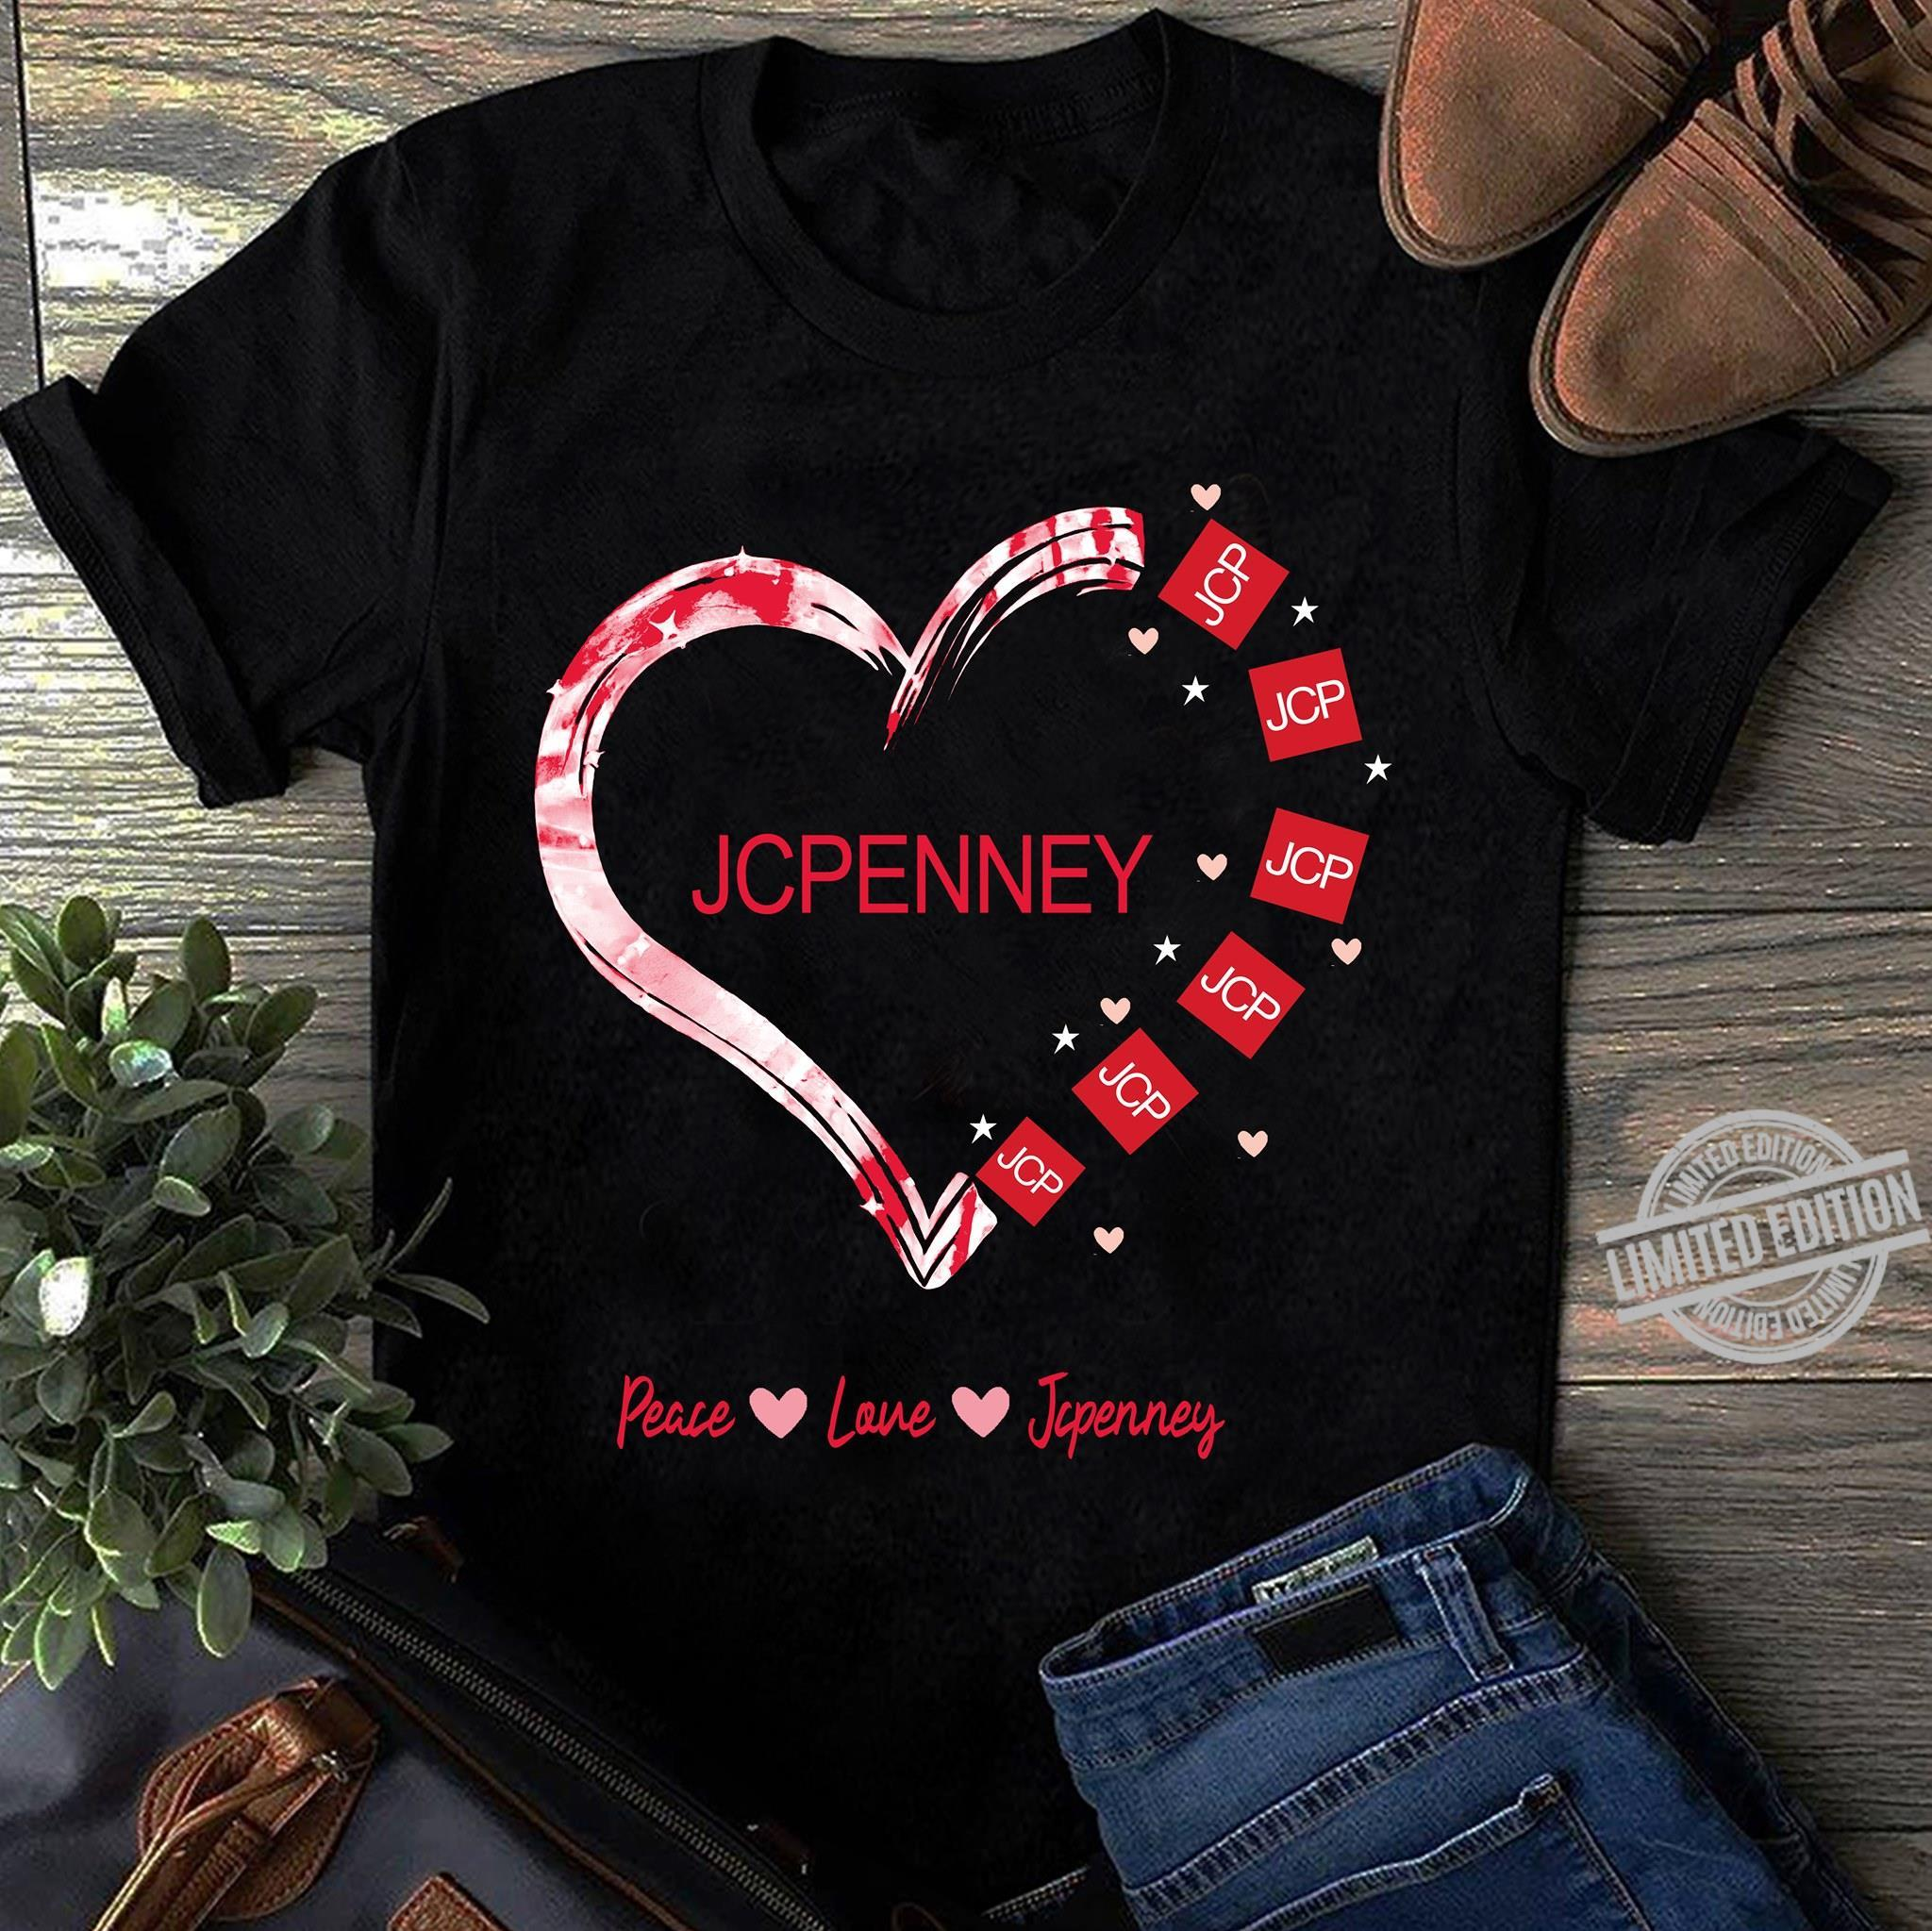 Jcpenney Peace Love Jcpenney Shirt